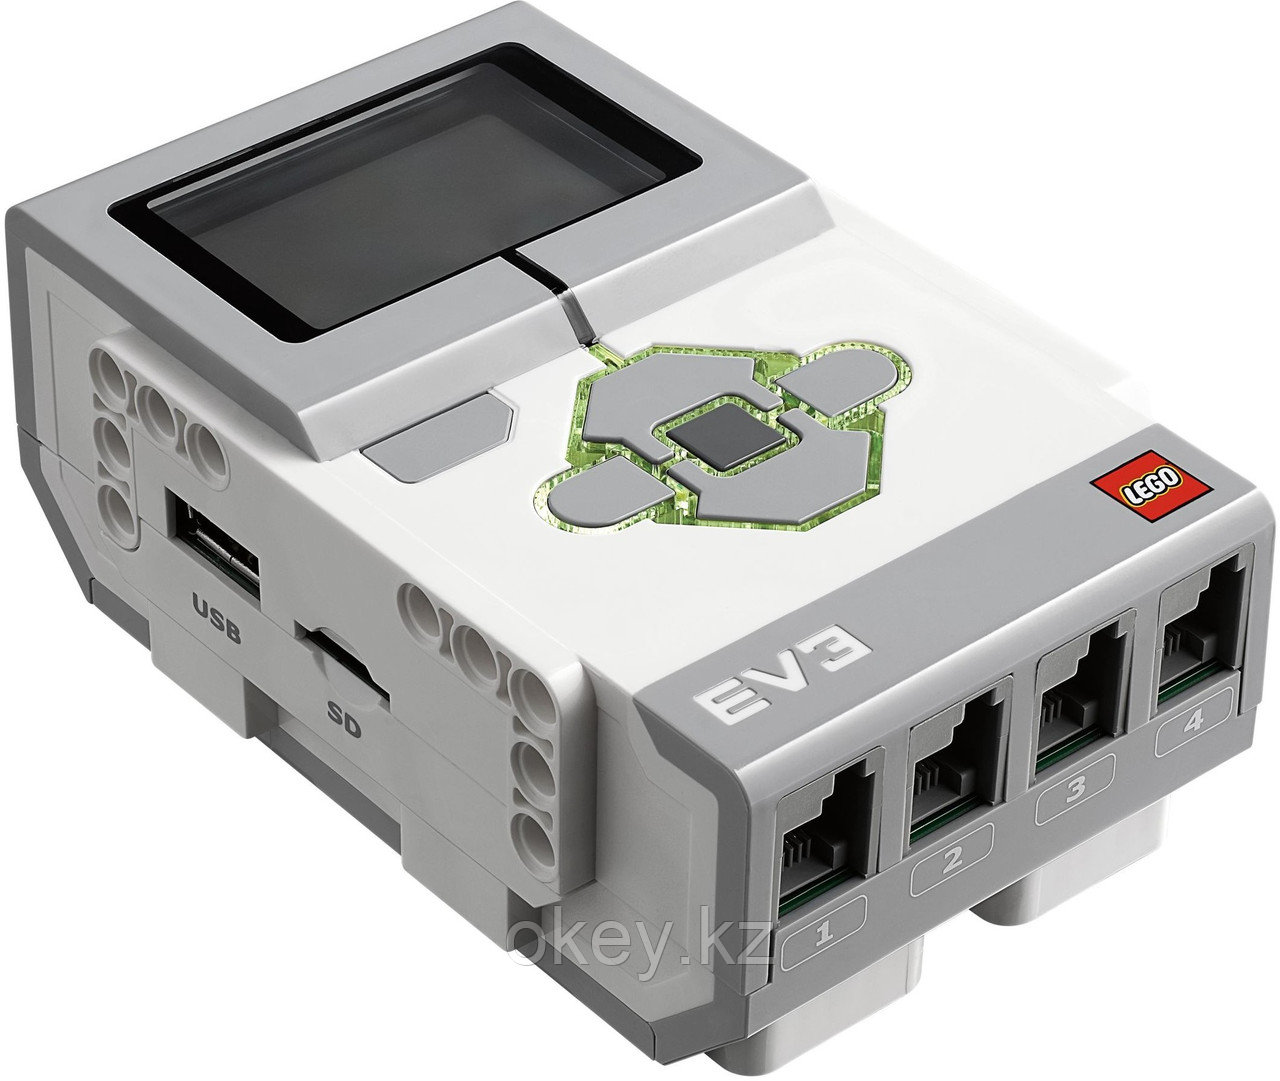 LEGO Education Mindstorms: Микрокомпьютер EV3 45500